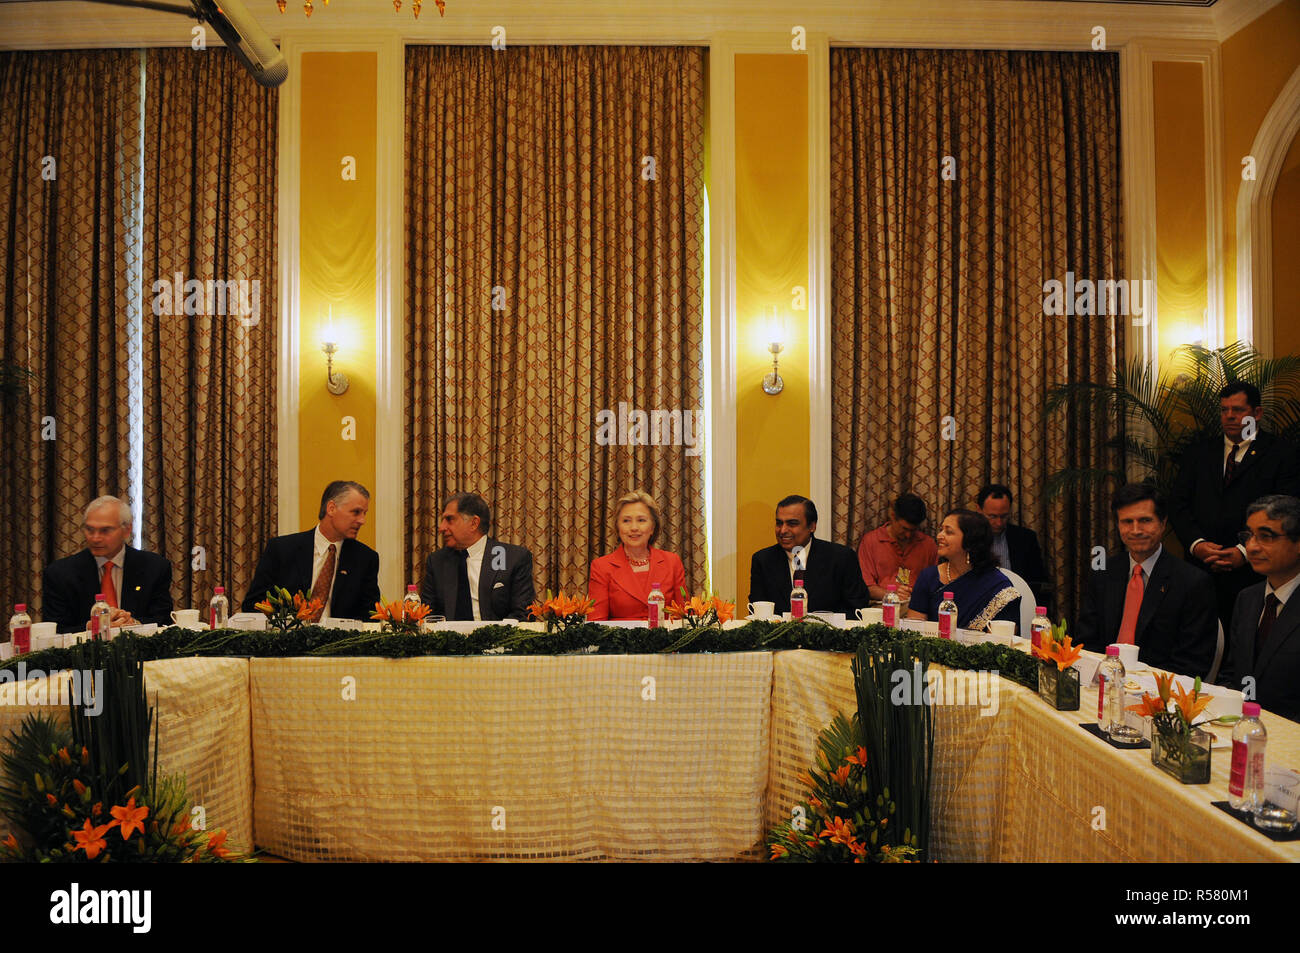 From left to right: Jamshyd N. Godrej, Chairman of the Board of Godrej and Boyce Manufacturing Company Limited; Timothy J. Roemer, U.S. Ambassador-Designate to India; Ratan Tata, Chairman of the Tata Group; Secretary Clinton; Mukesh Ambani, chairman and managing director of Reliance Industries; Swati Piramal, Director of Strategic Alliance and Communication at Piramal Healthcare Ltd.; Robert O. Blake, Assistant Secretary of State for South and Central Asia; O.P. Bhatt, Chairman of the State Bank of India - Stock Image